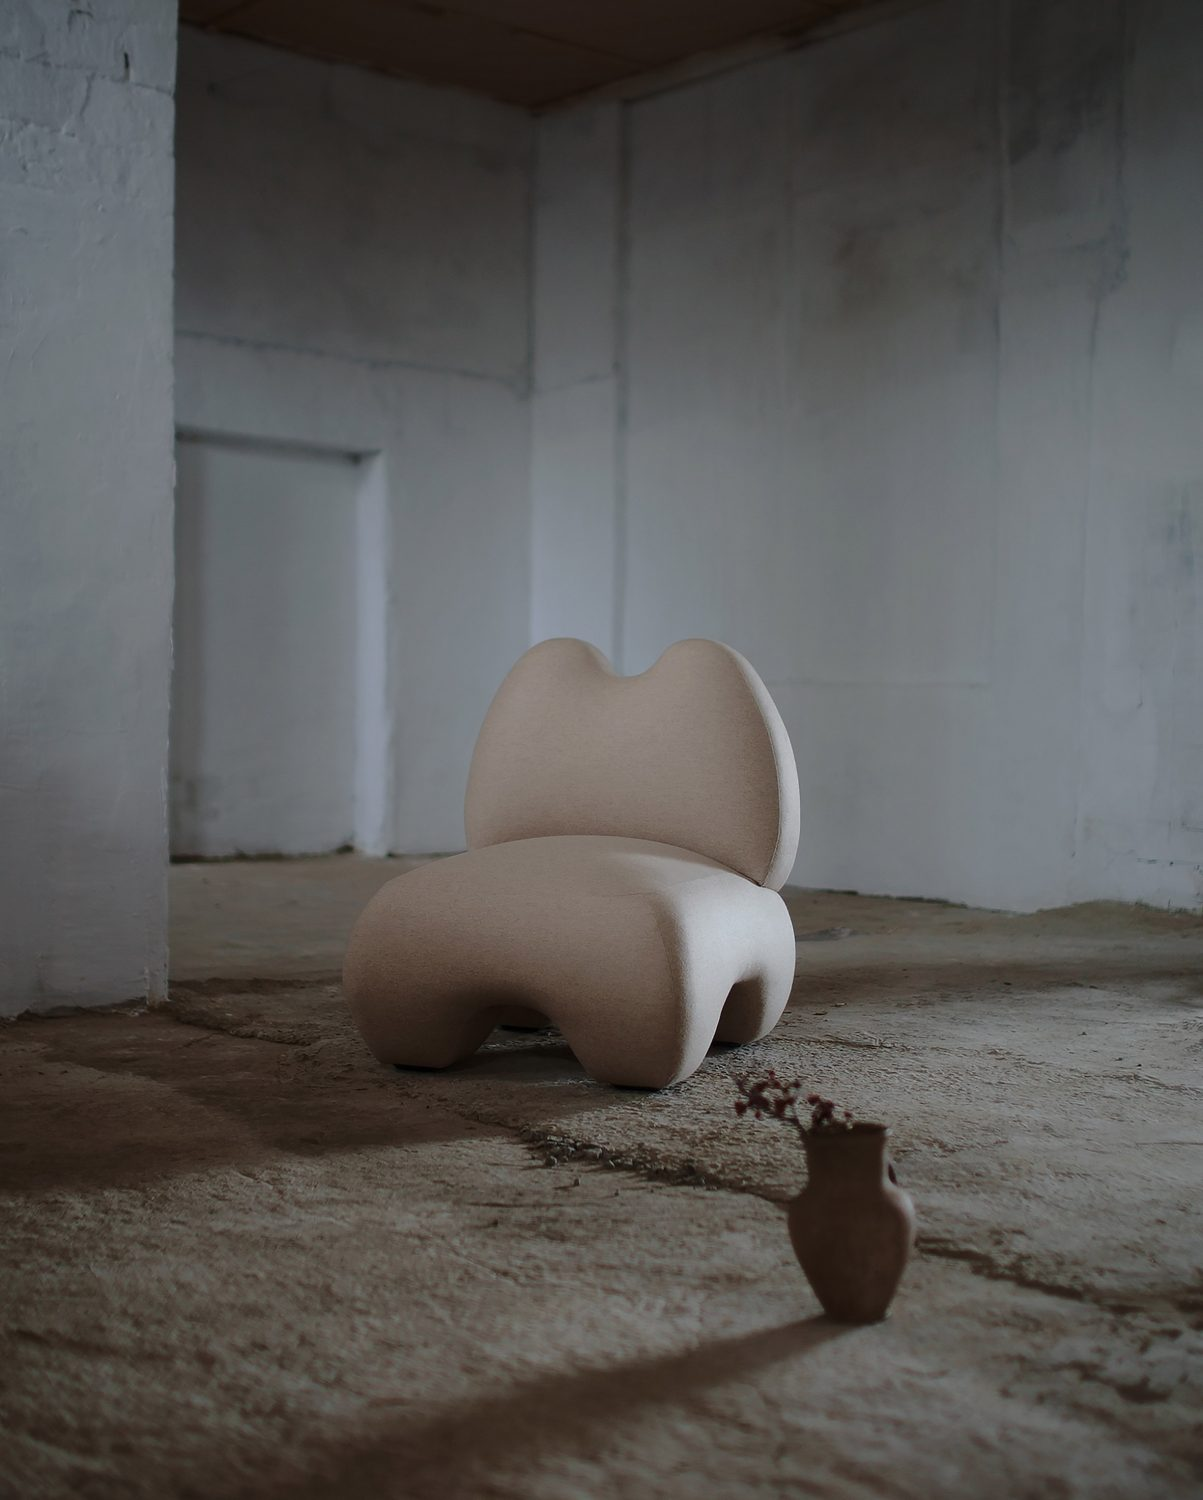 Domna Armchair: Add A Minimalist Touch To Your Home Decor domna armchair Domna Armchair: Add A Minimalist Touch To Your Home Decor domna armchair add minimalist touch home decor 1 scaled